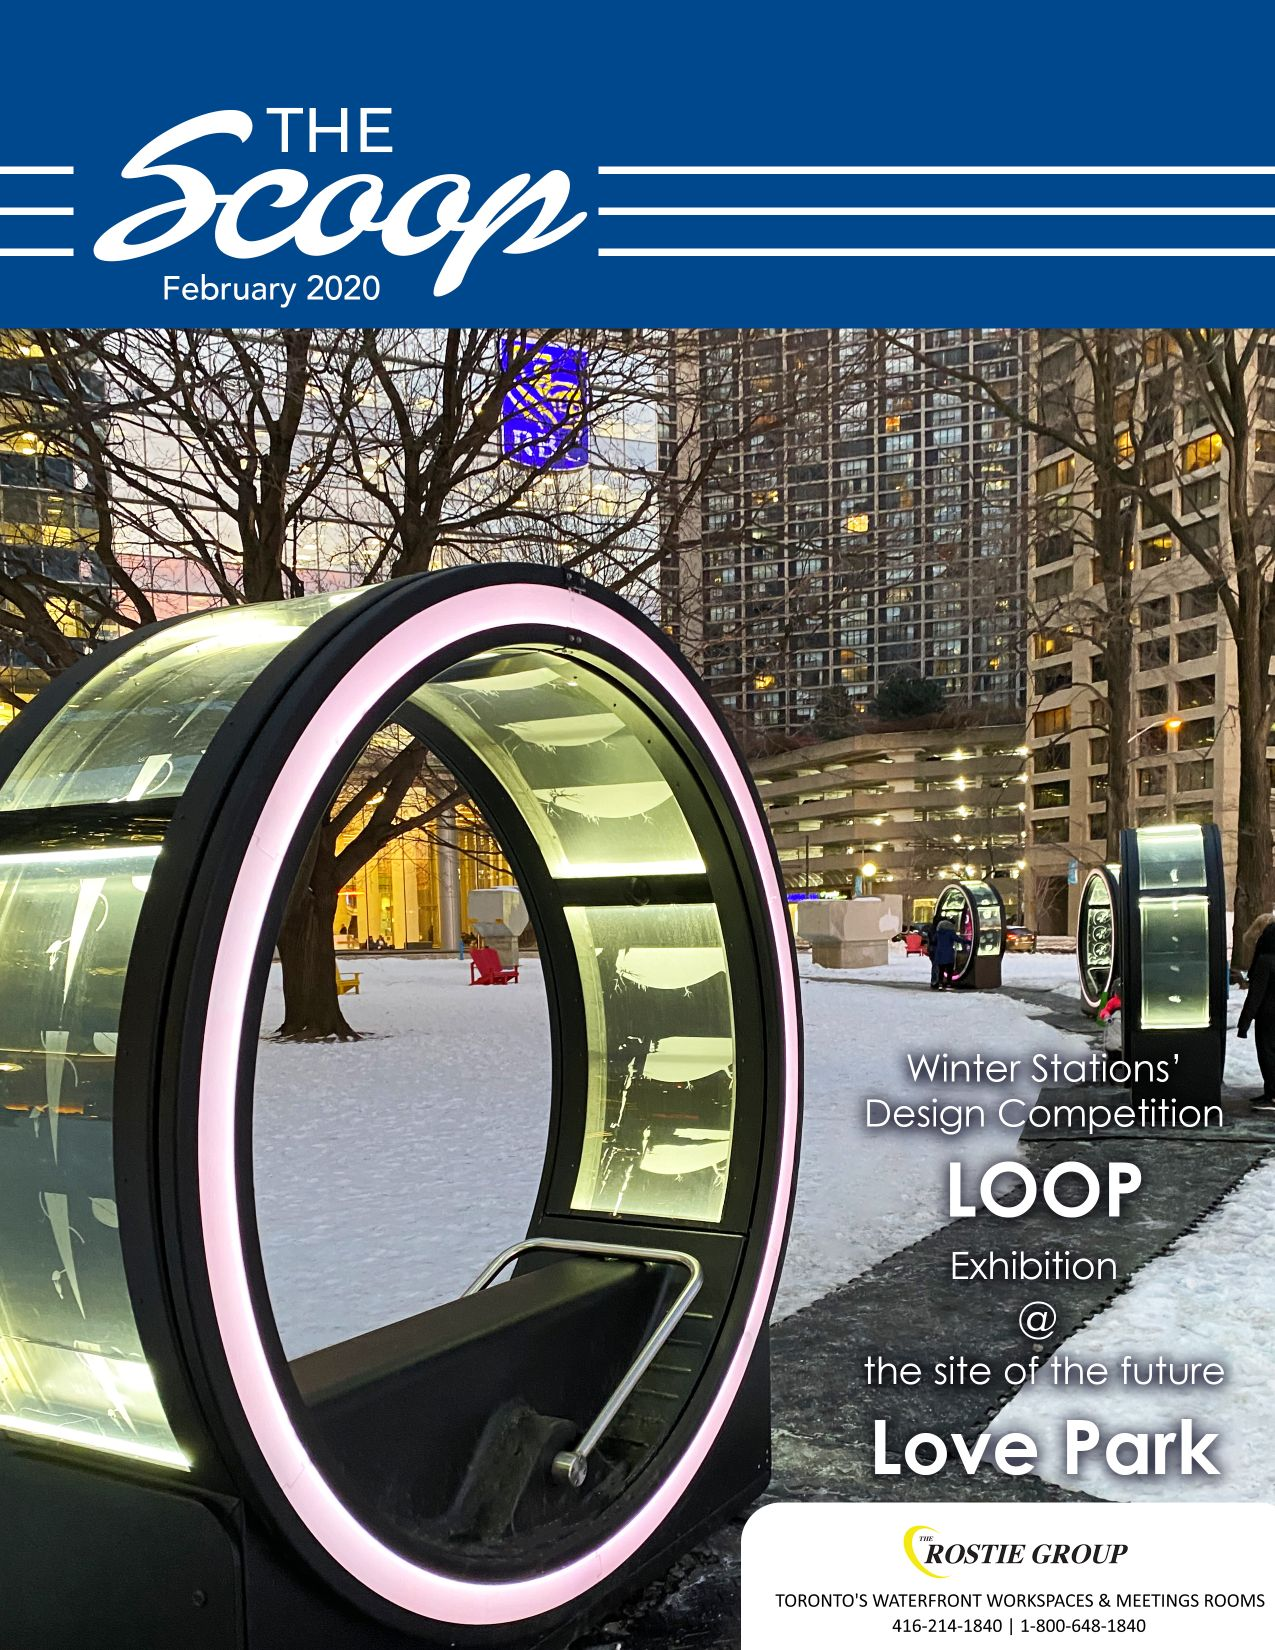 Rostie Group Scoop February 2020 Cover Page